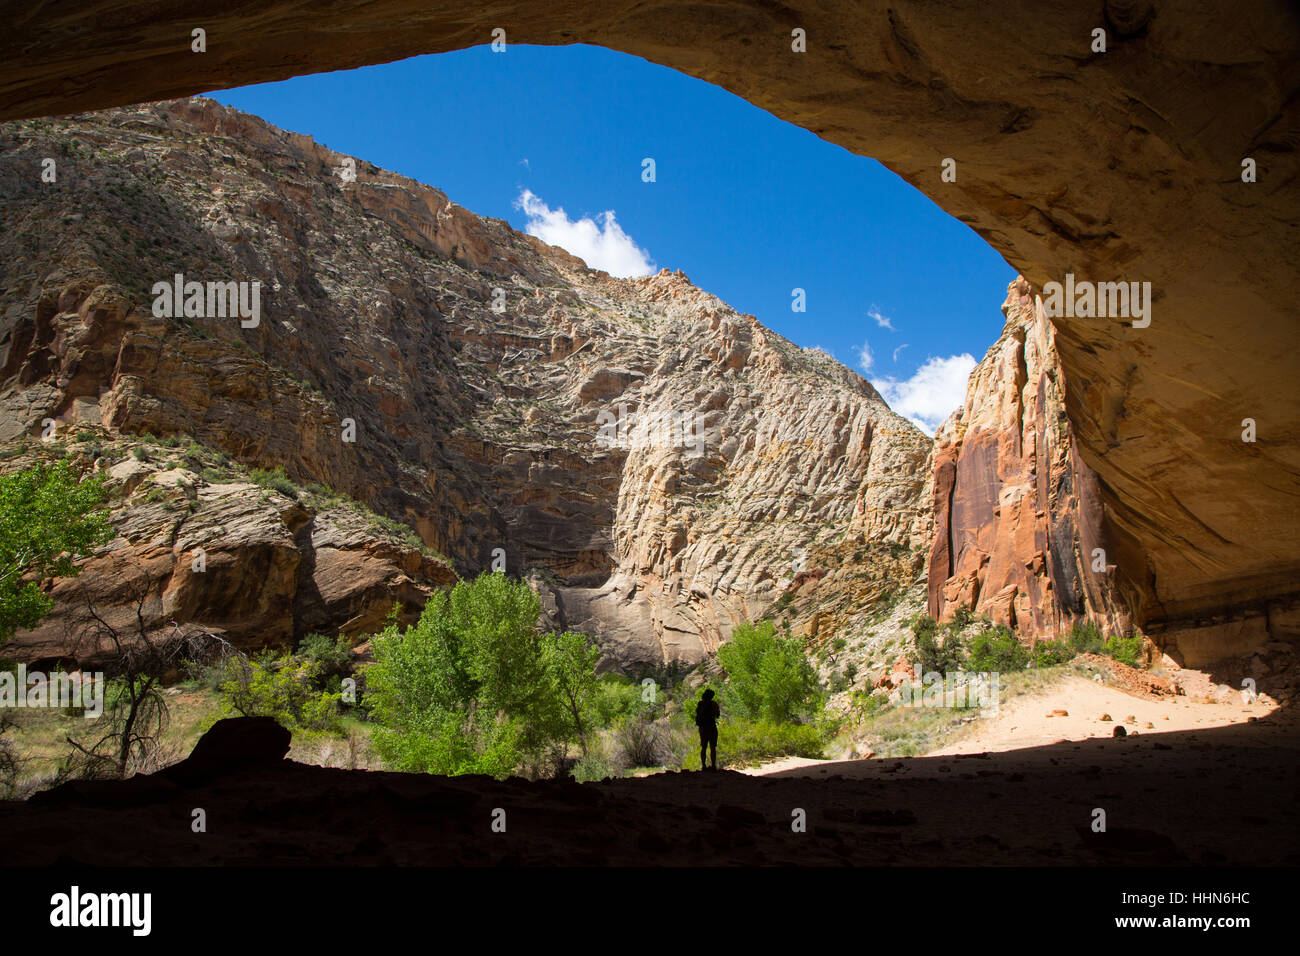 A male hiker standing at the base of a large sandstone alcove. Grand Staircase-Escalante National Monument, Utah Stock Photo